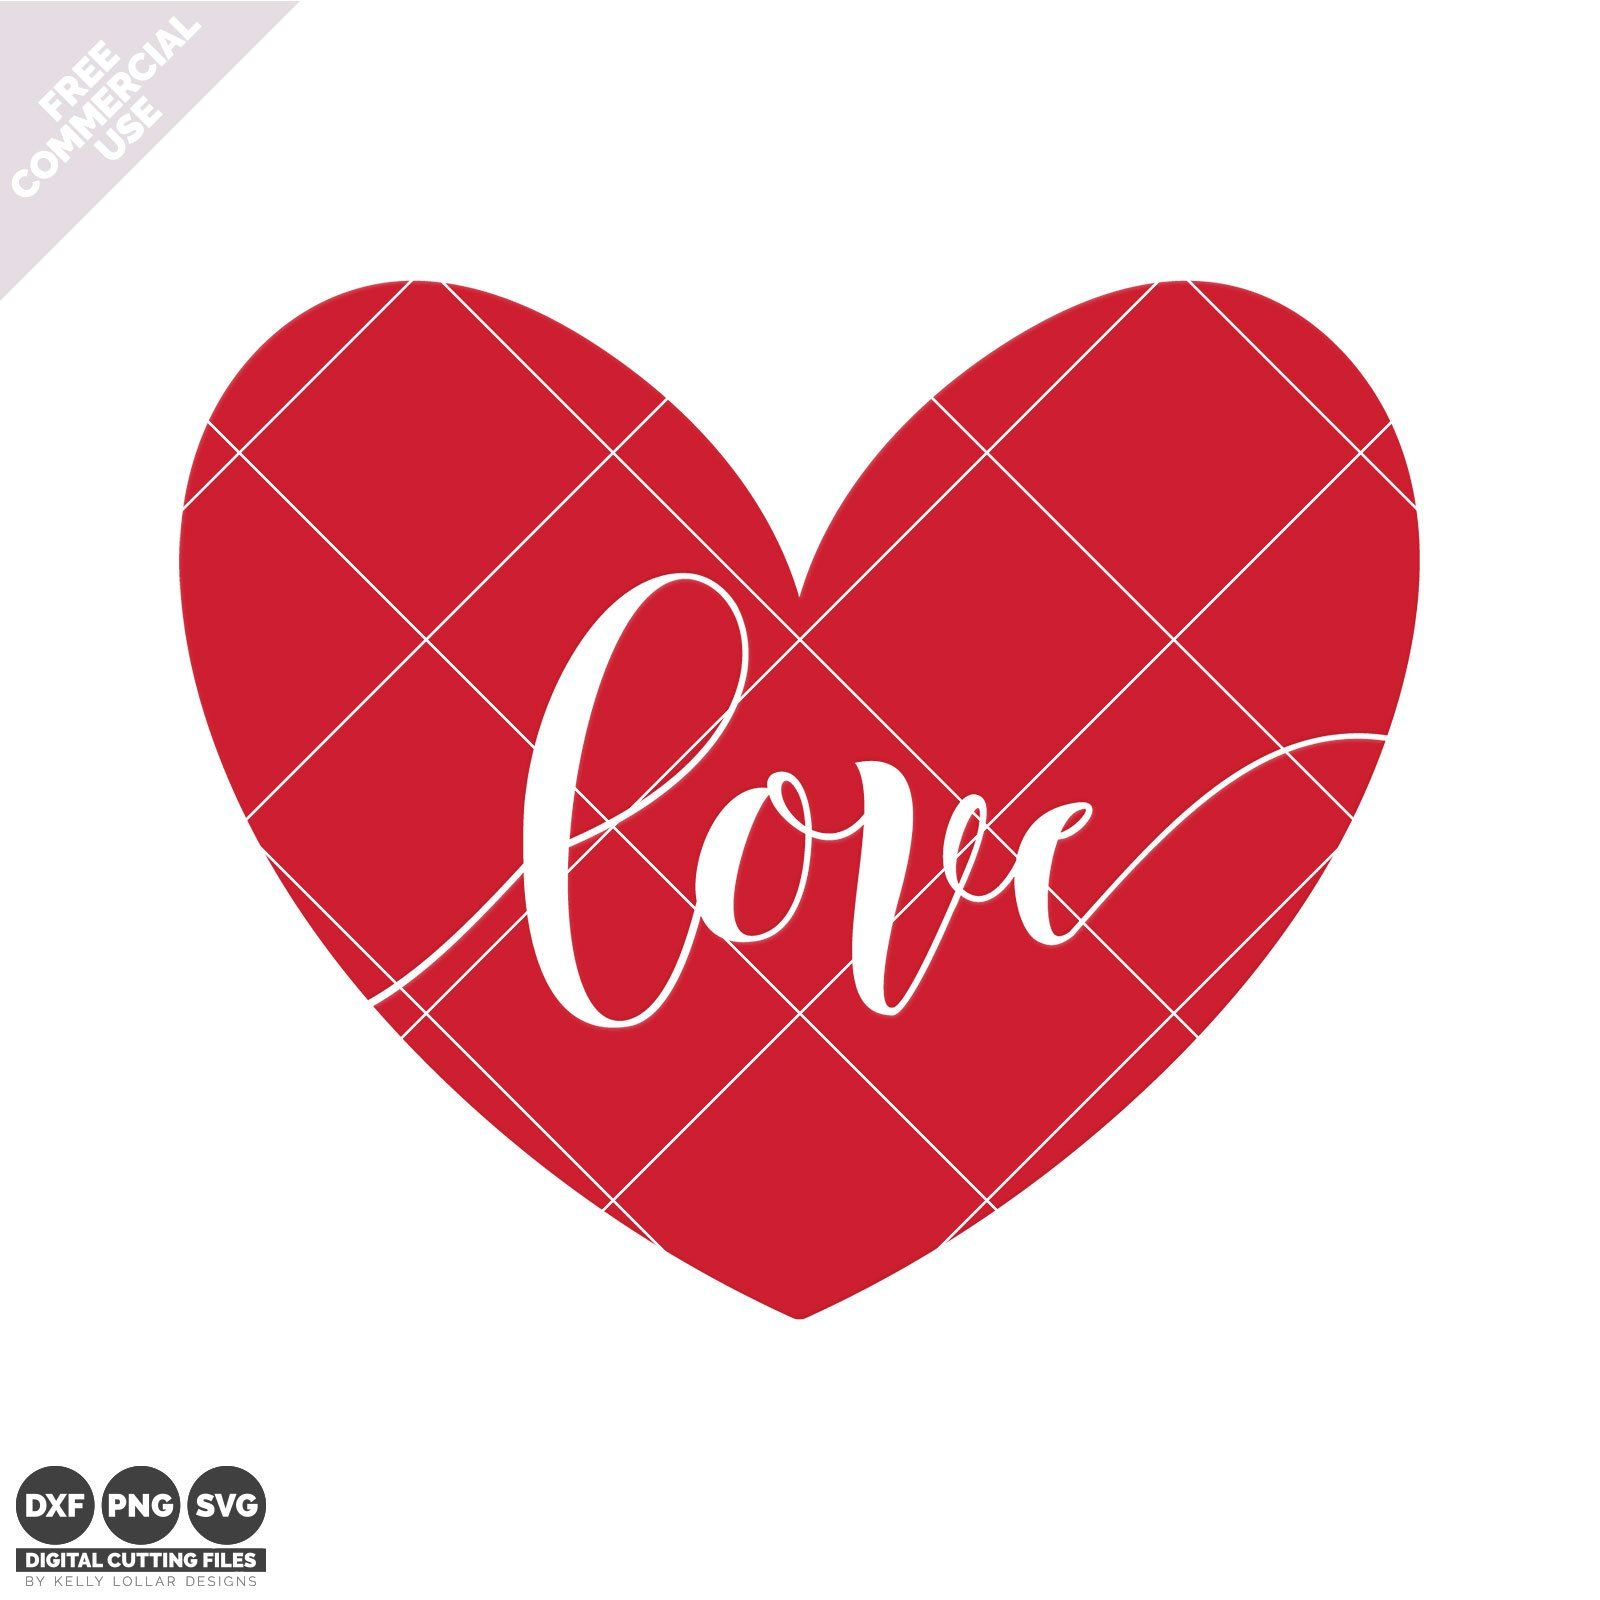 Love Heart SVG File for Valentine's Day Kelly Lollar